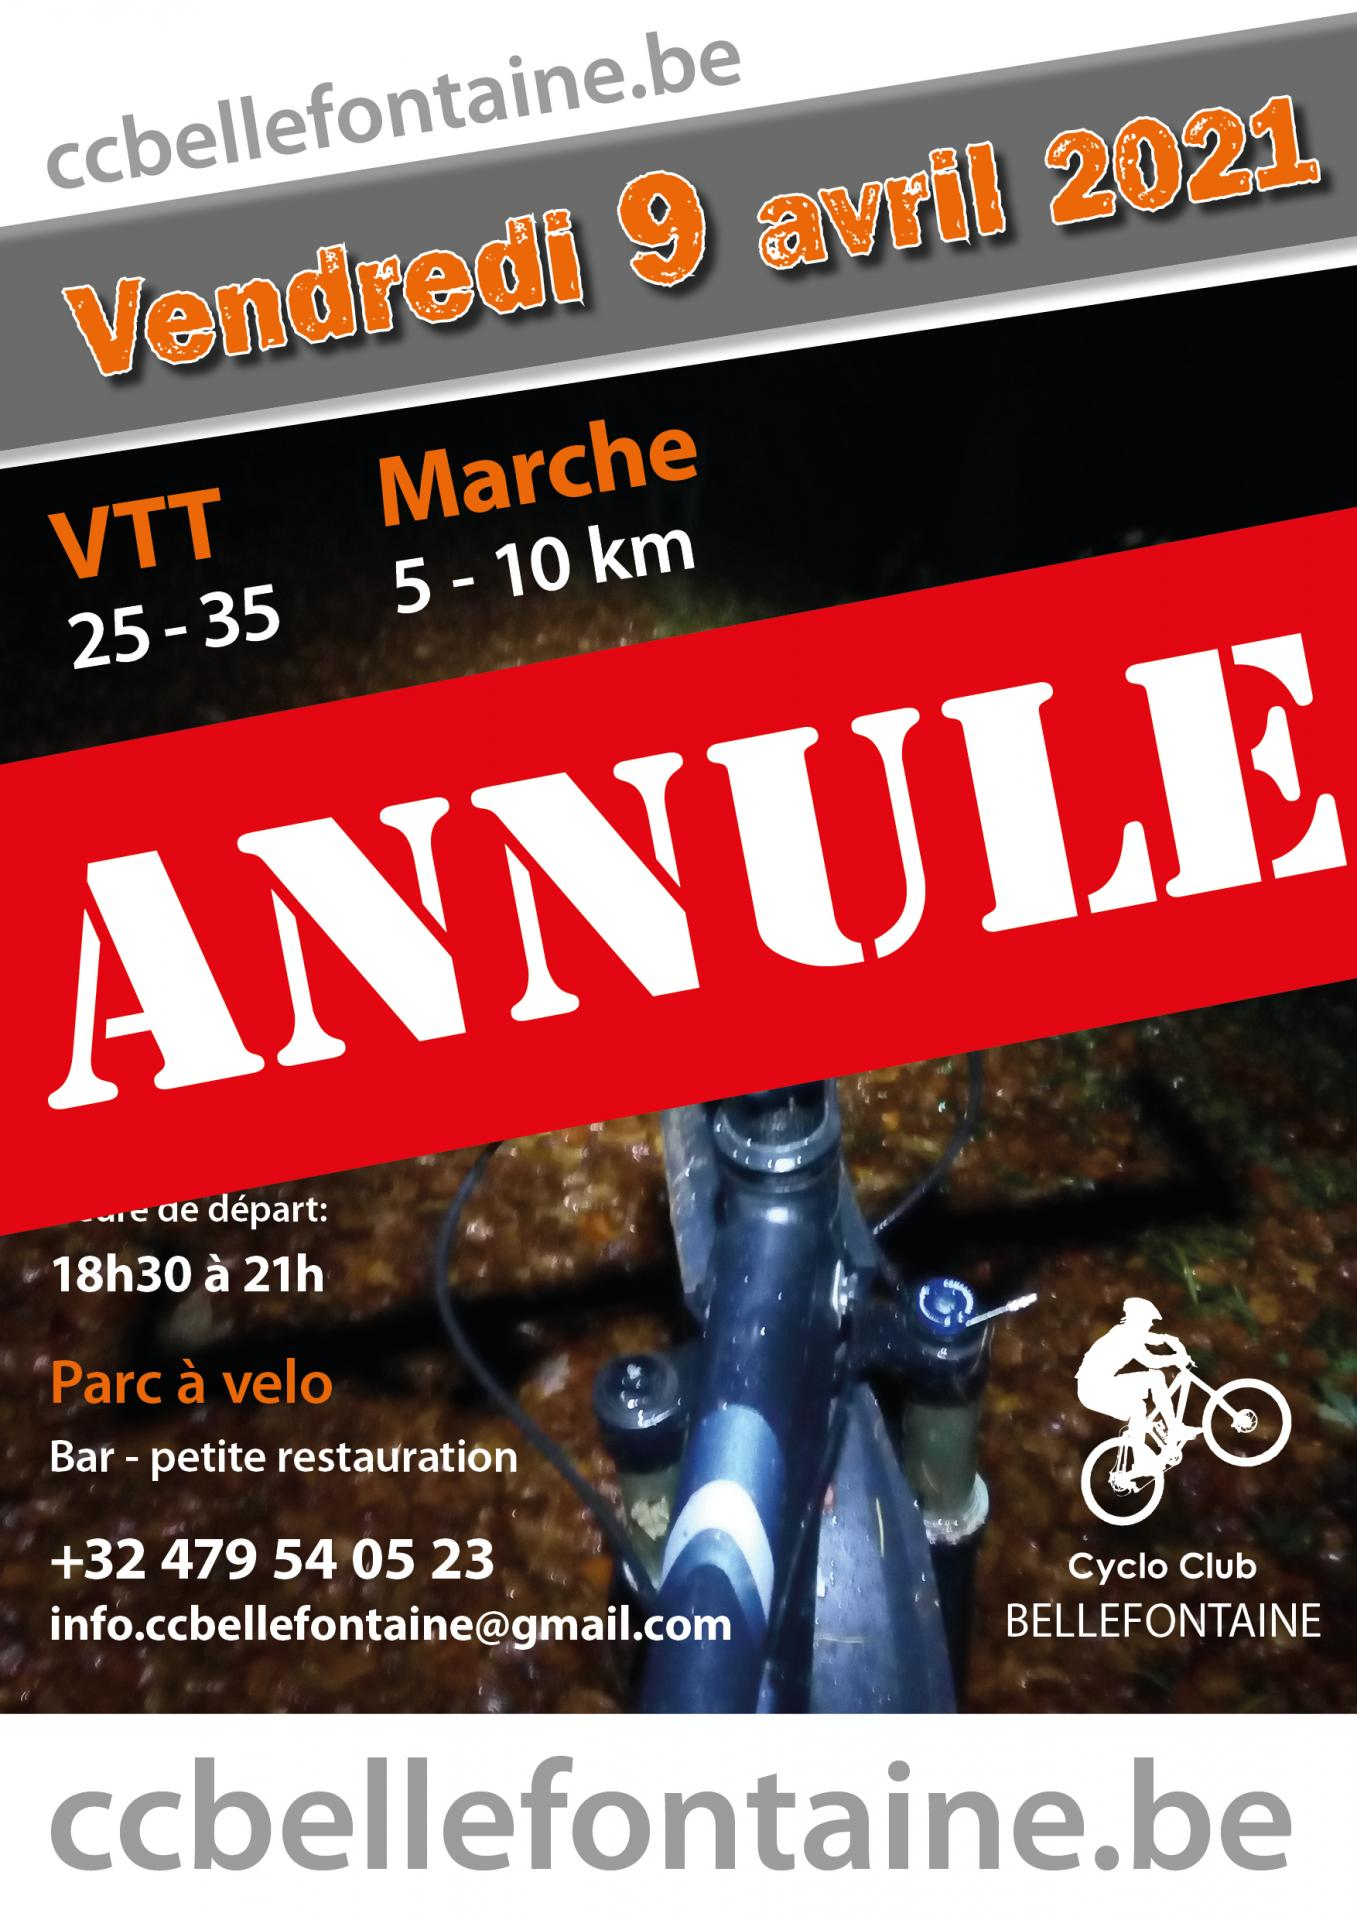 Ccb aff nocturne annule